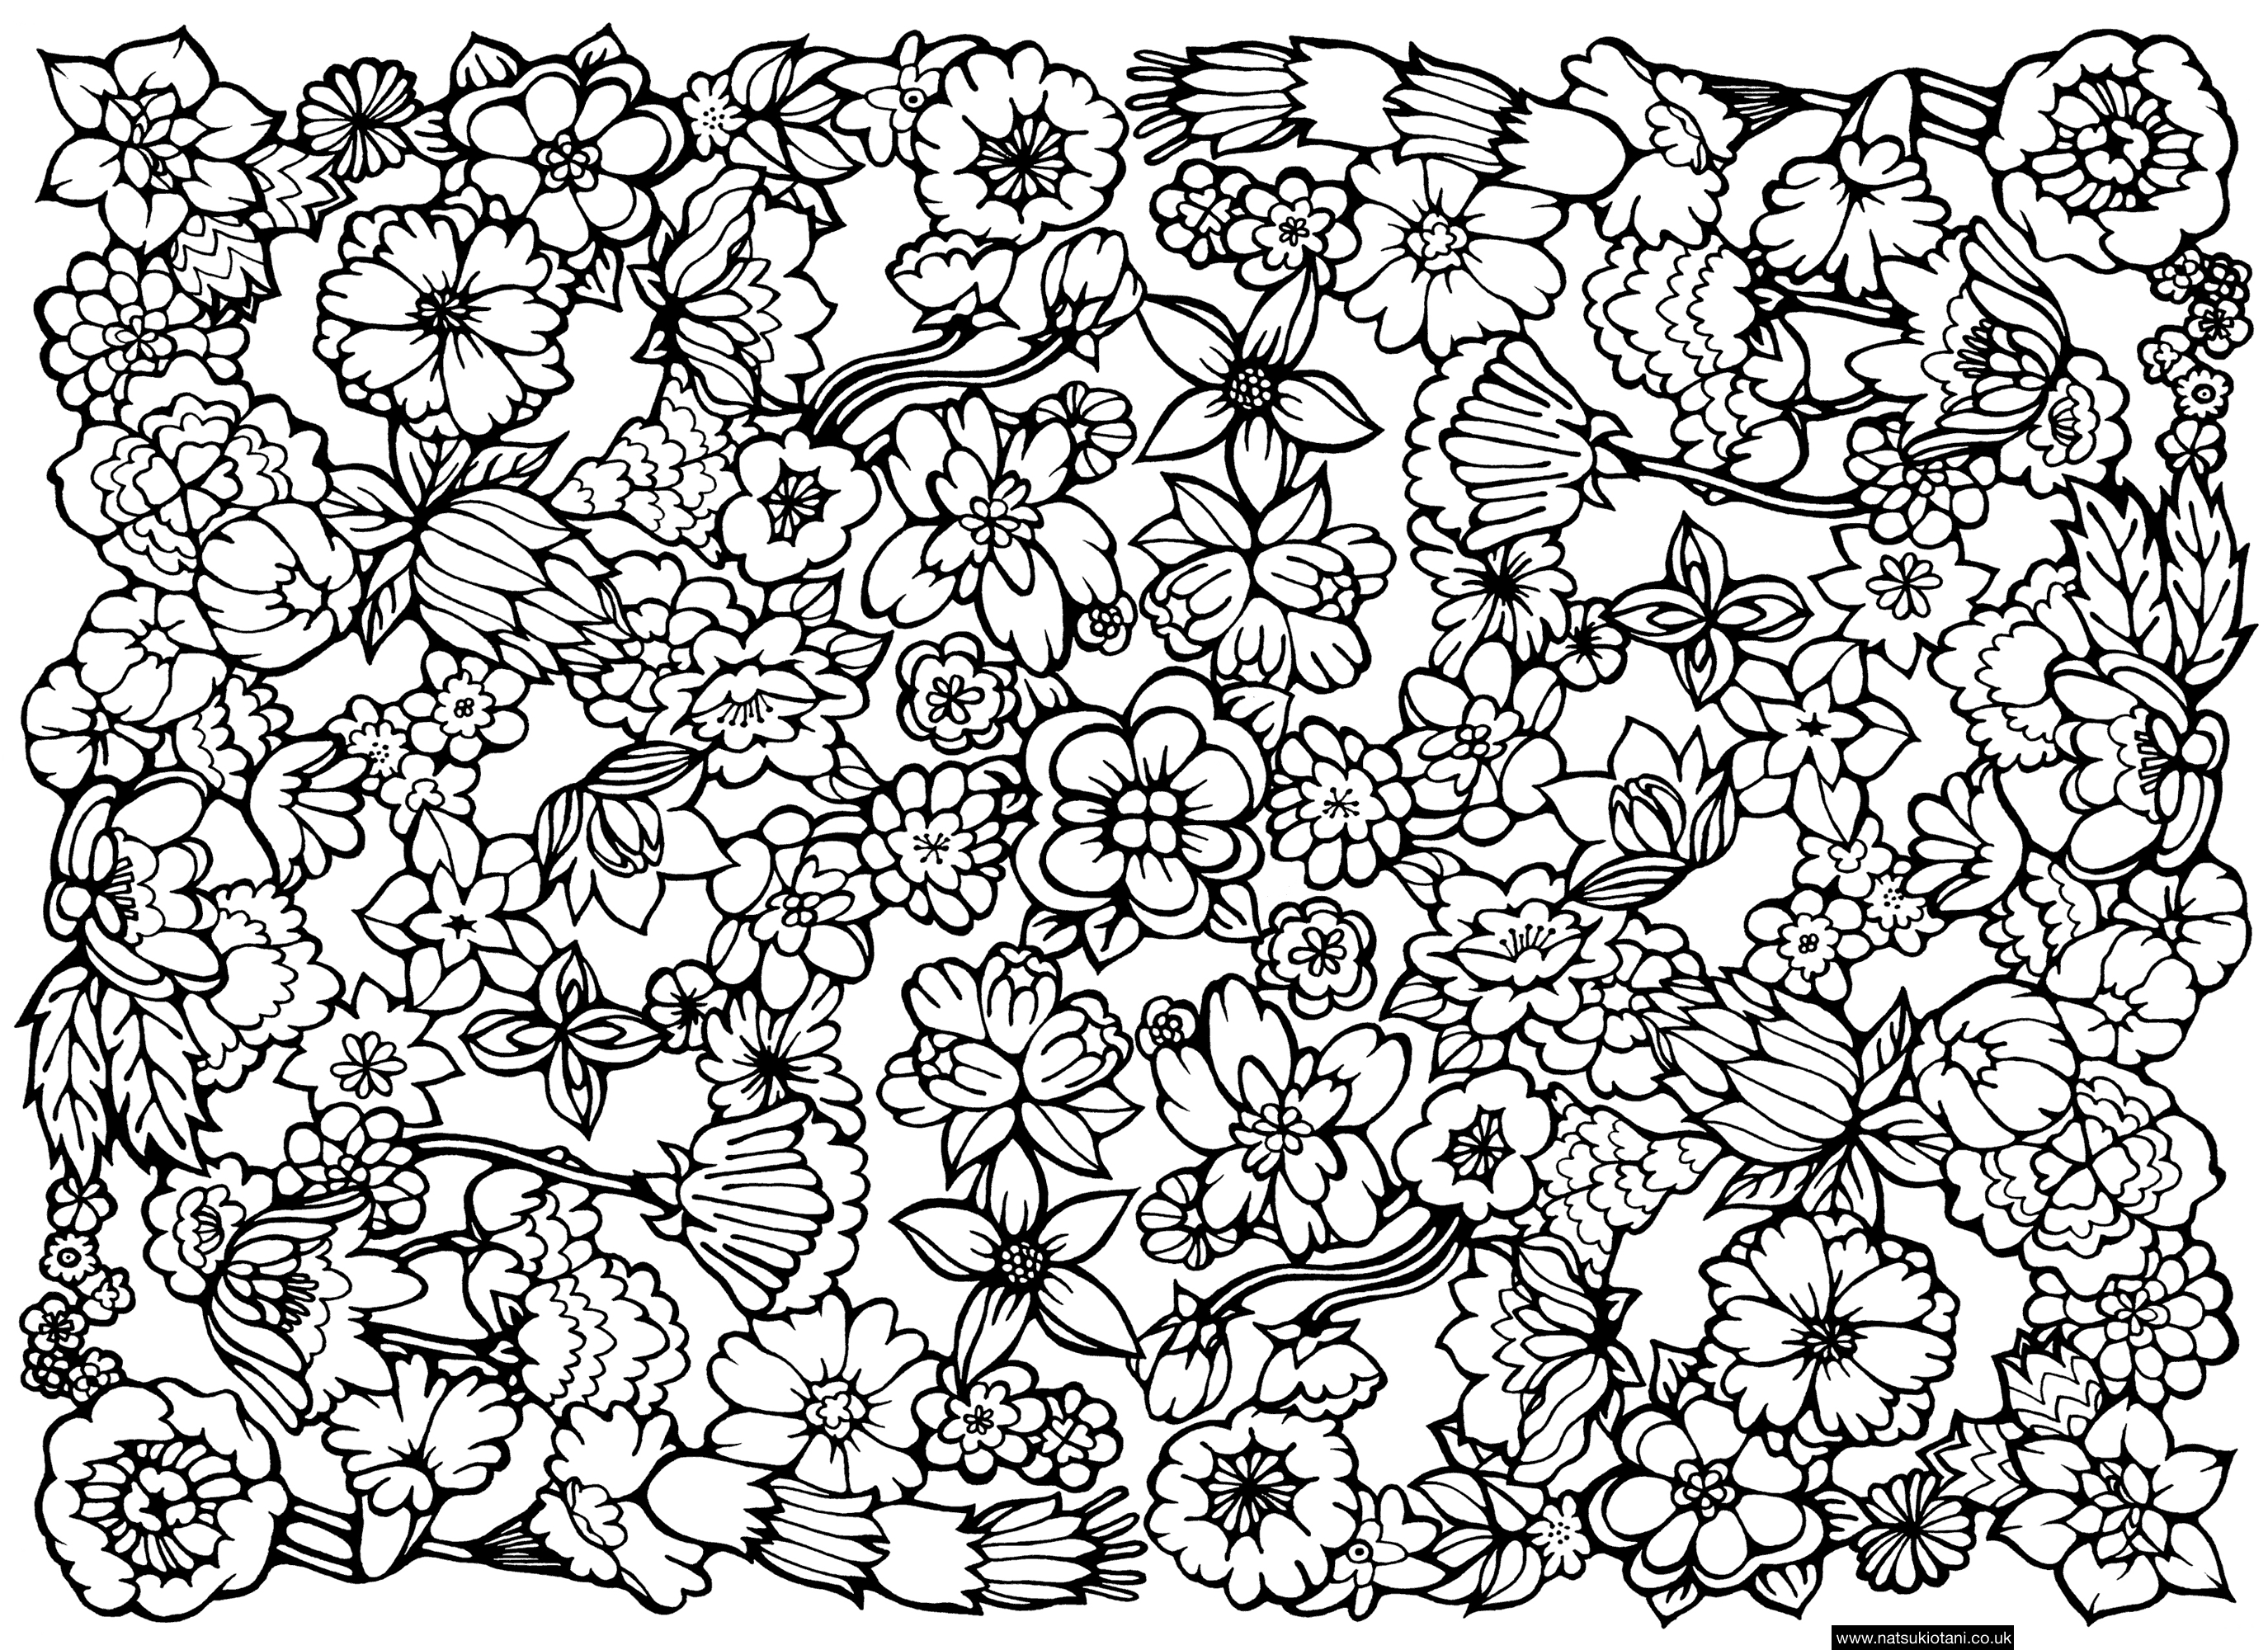 Free Coloring Pages Of Difficult Patterns 14386 Bestofcoloring Com in Detailed Pattern Coloring Pages 29461